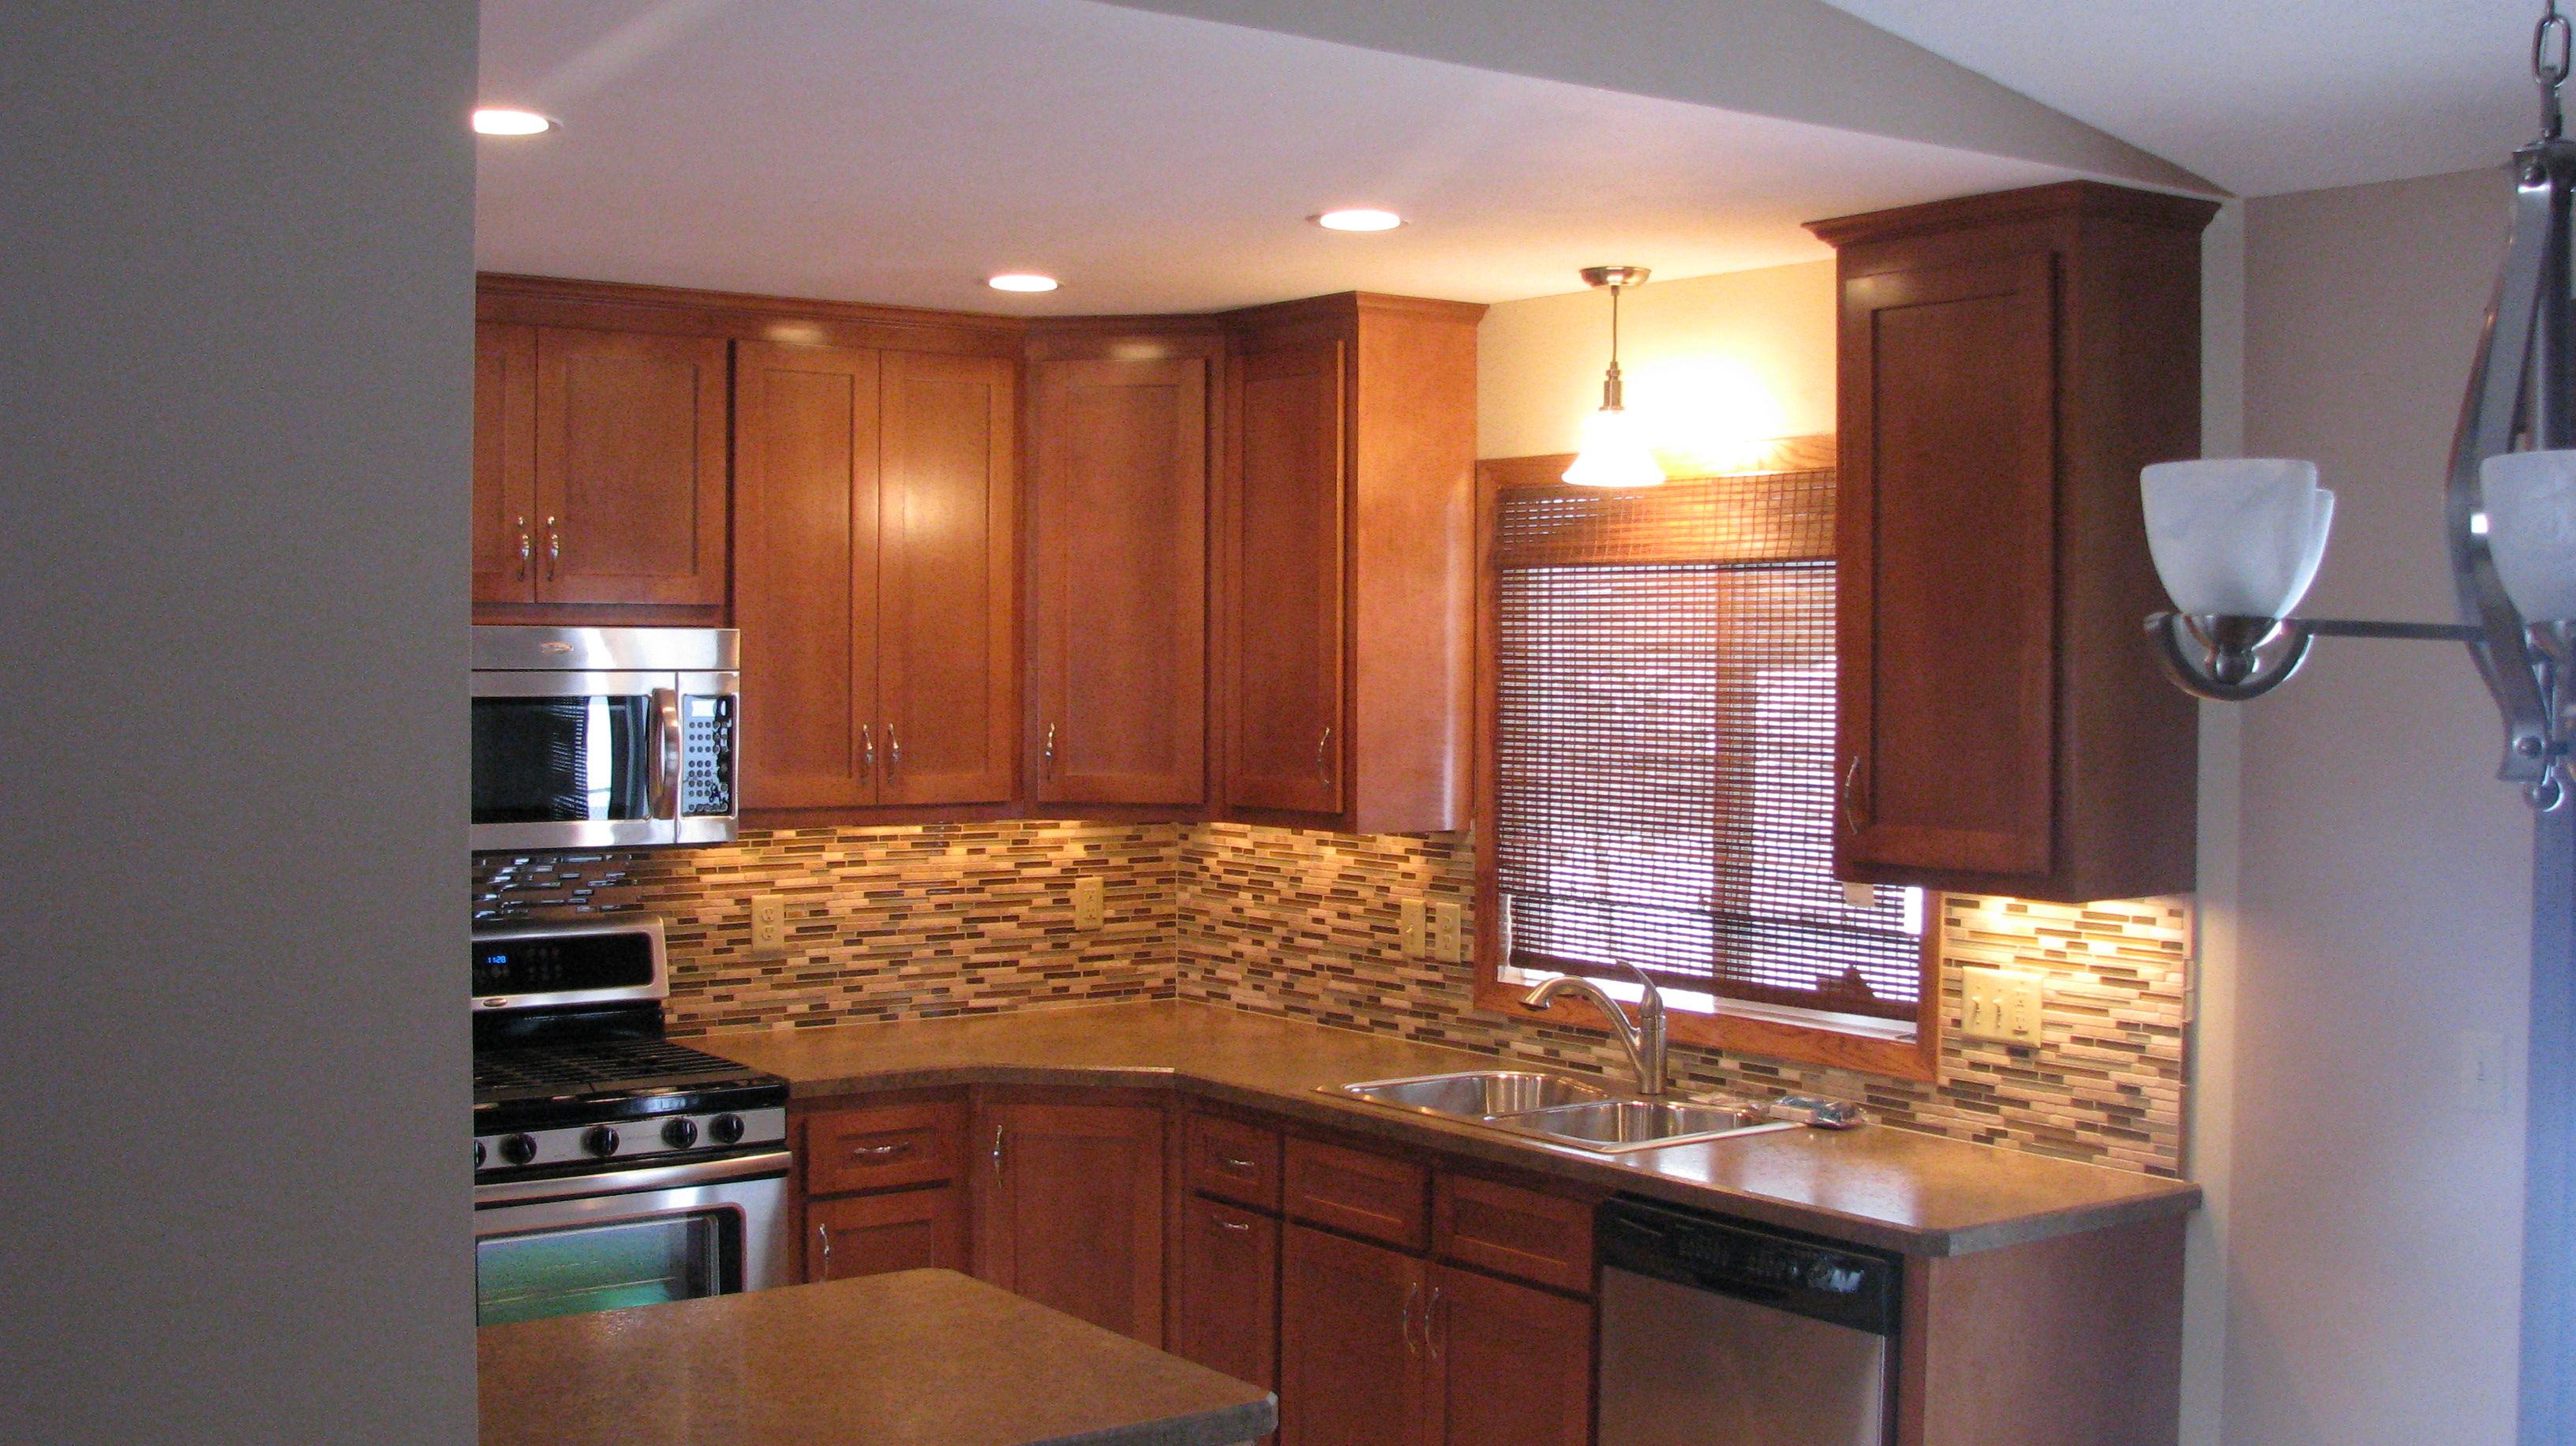 Split entry kitchen remodel remodeling kitchen for Home remodel ideas kitchen